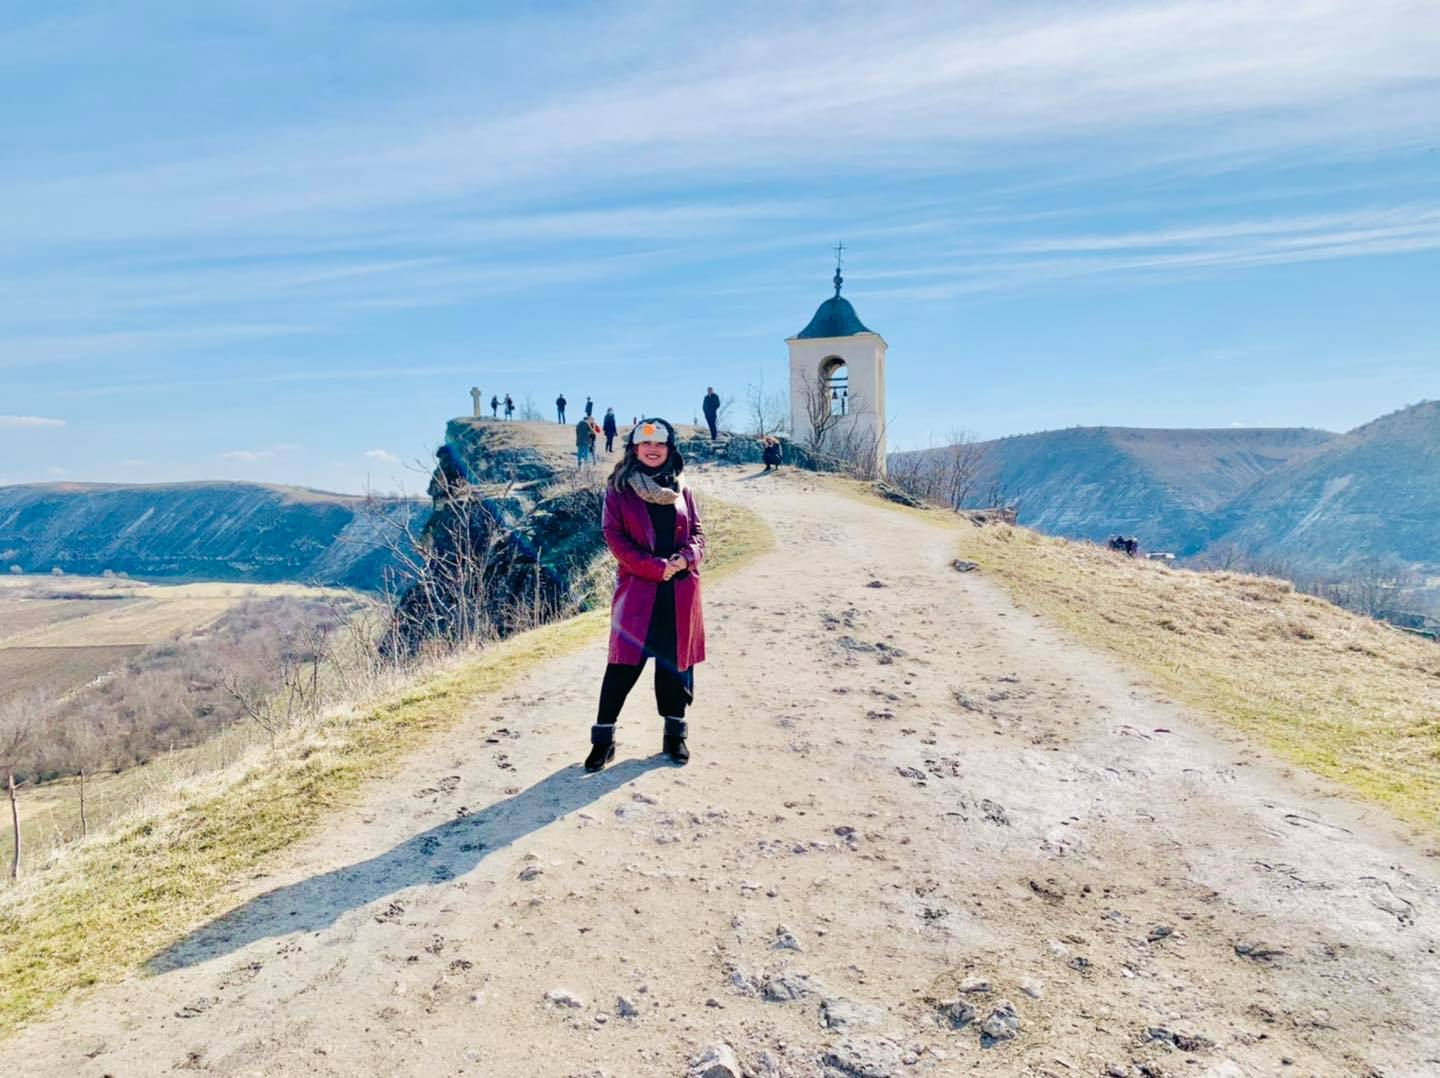 10 Reasons Why You Should Visit Moldova and Some Fun Facts